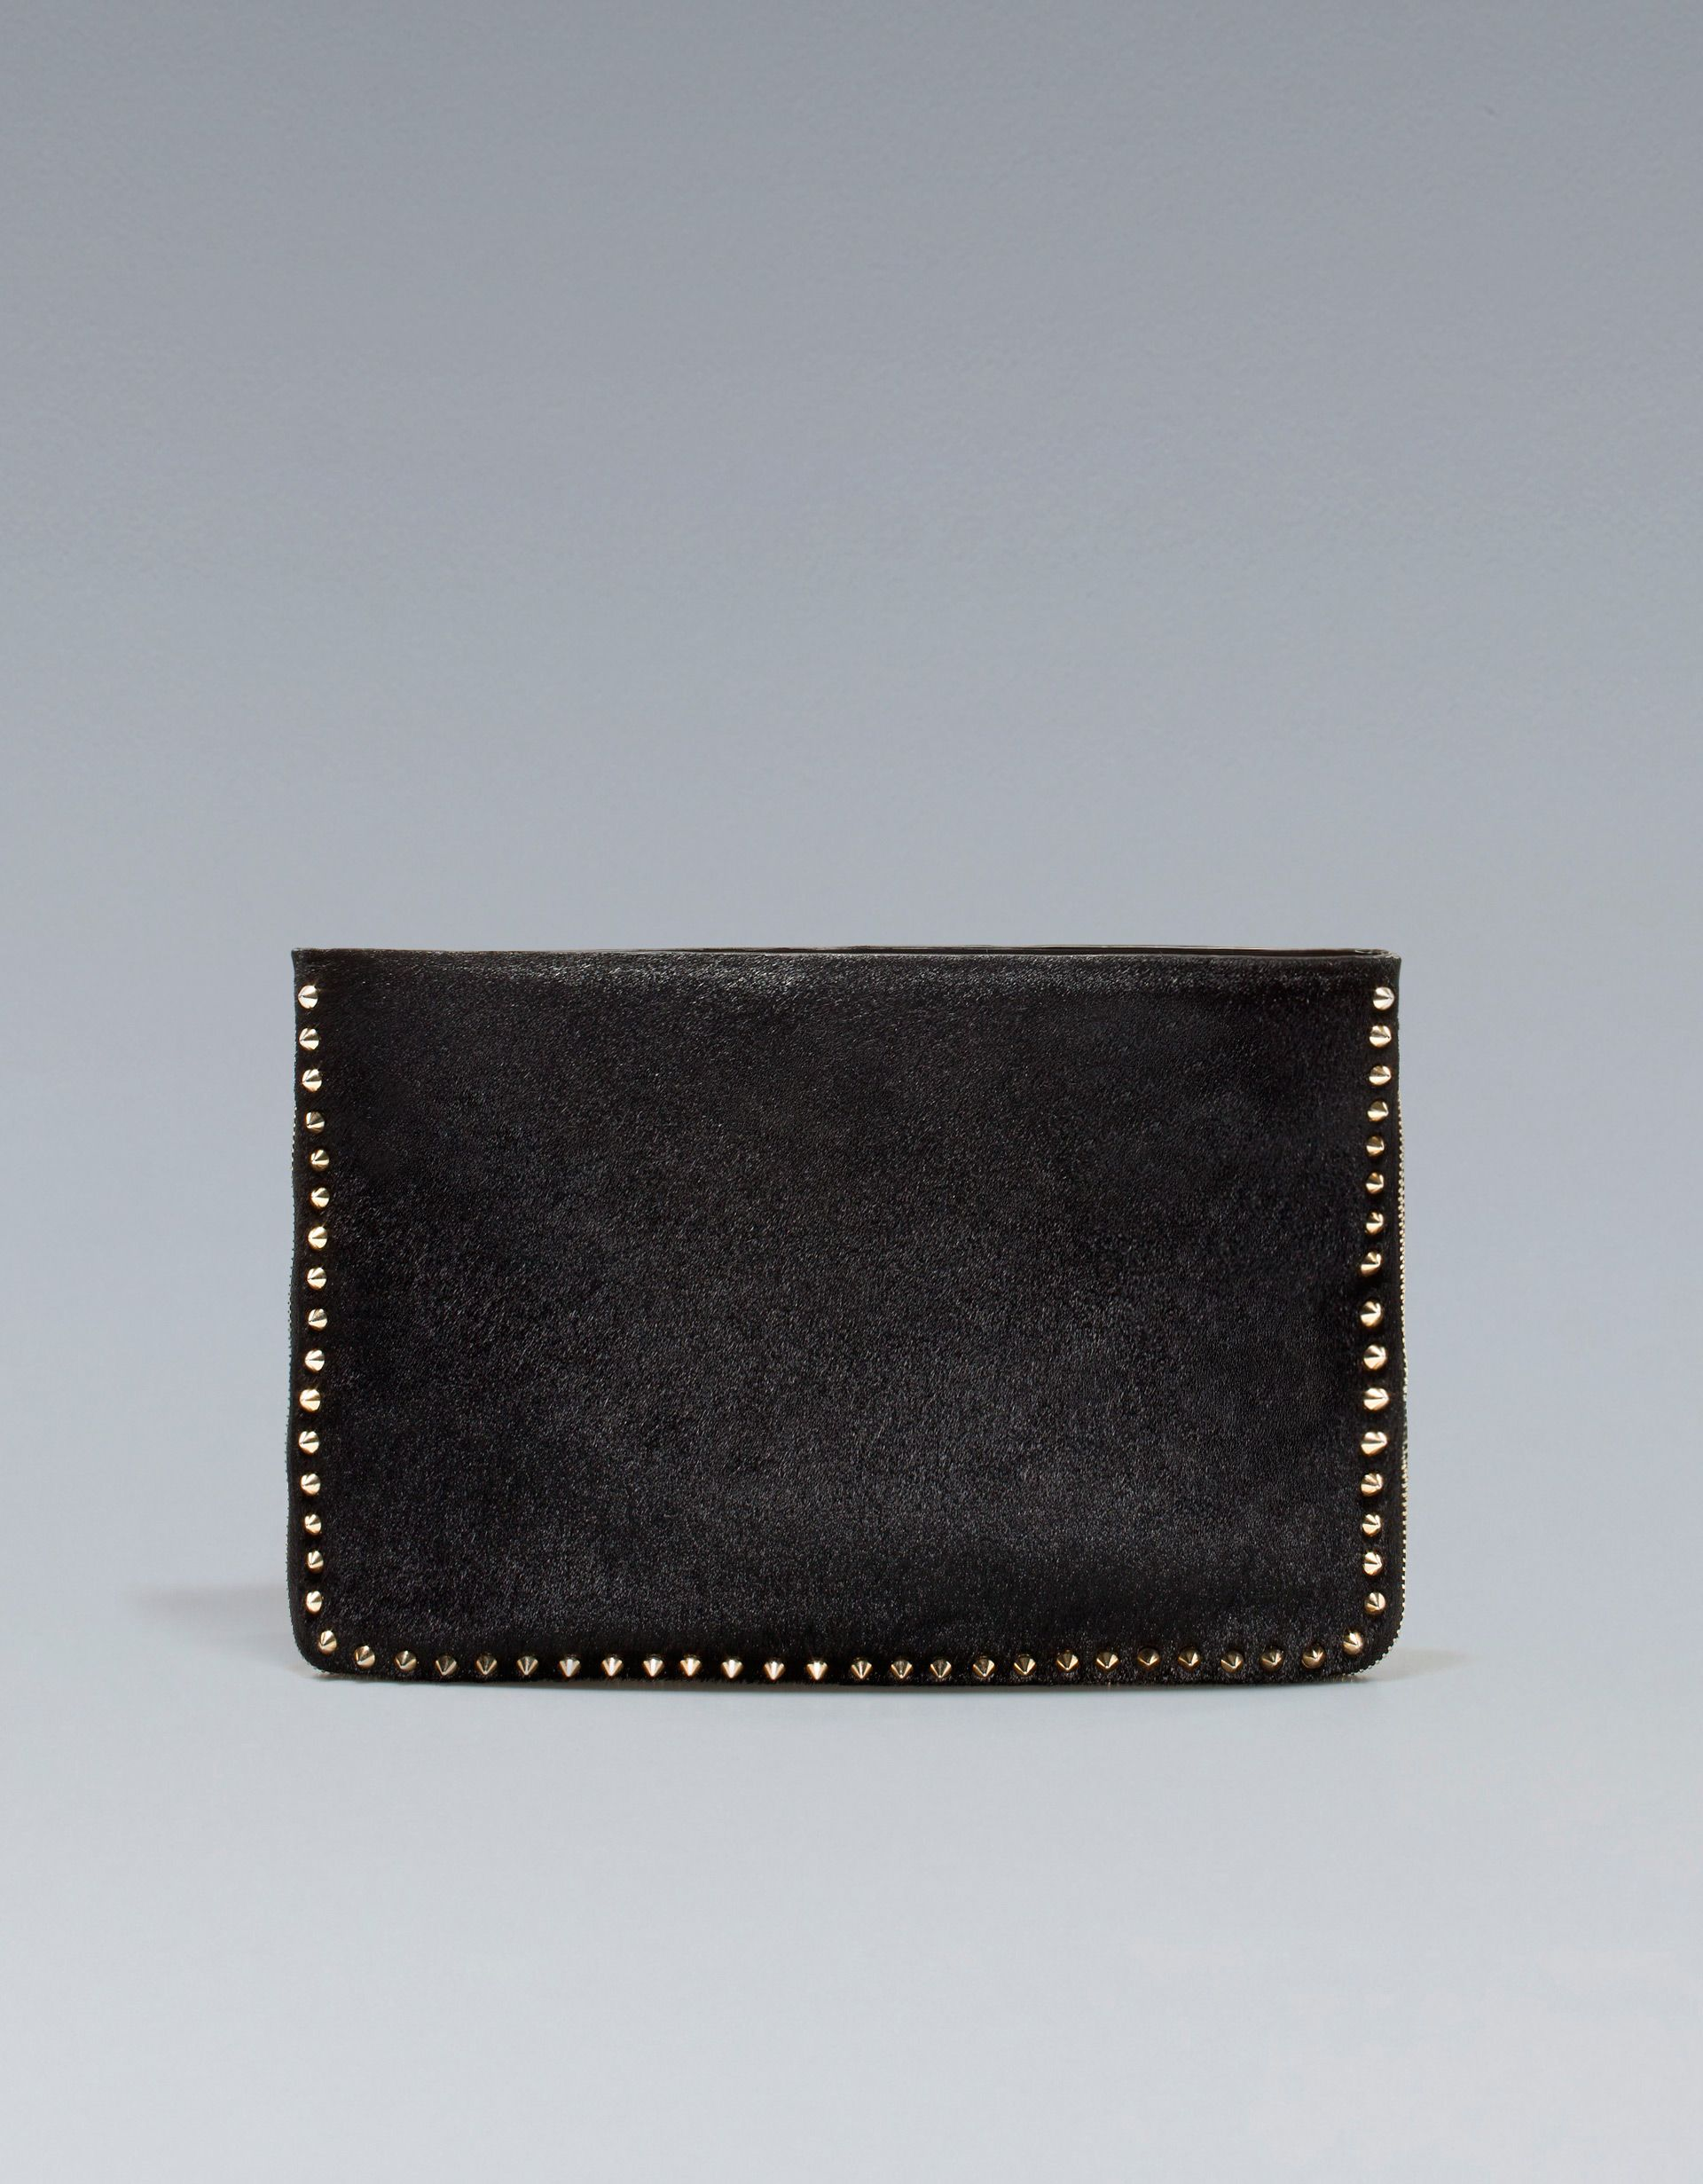 a137bfad813 $199 STUDDED LEATHER CLUTCH - Handbags - Woman - ZARA Singapore ...